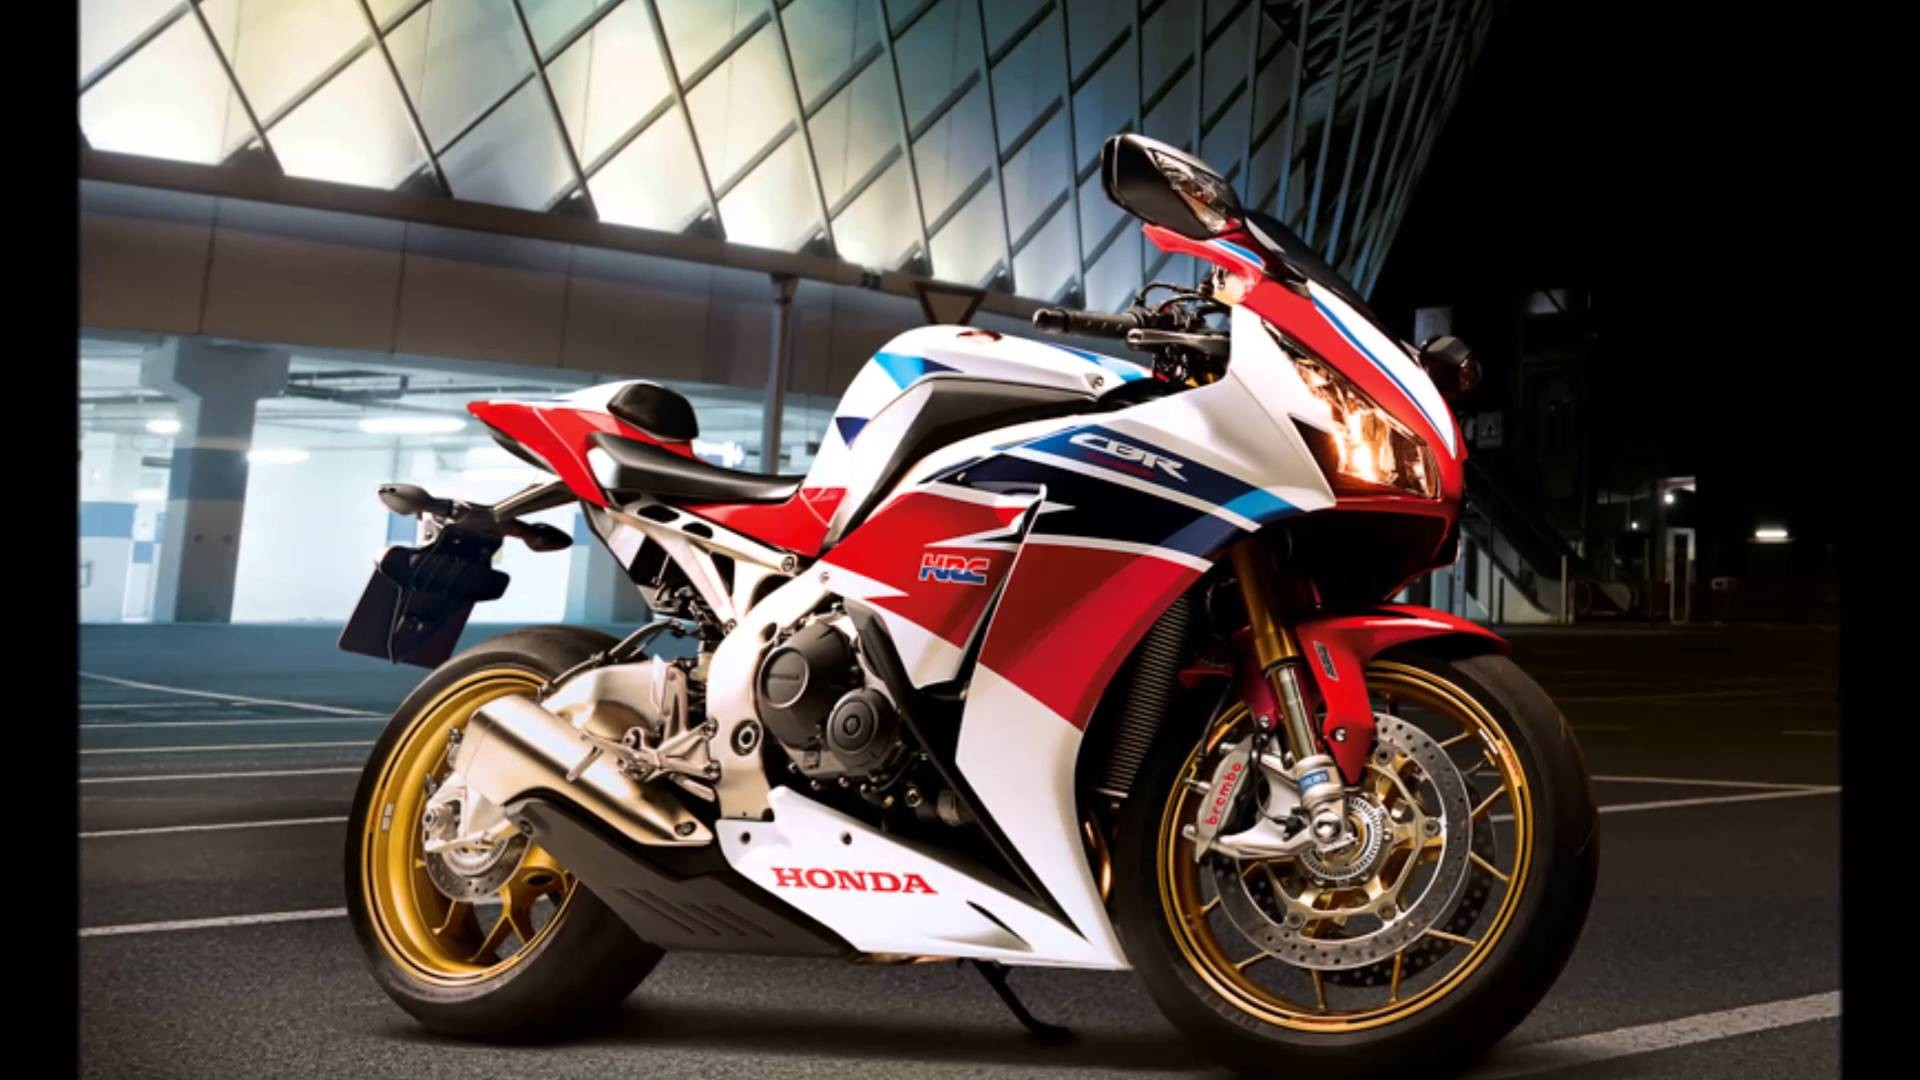 Res: 1920x1080, Honda Cbr1000rr Sp Fireblade Wallpapers For Android